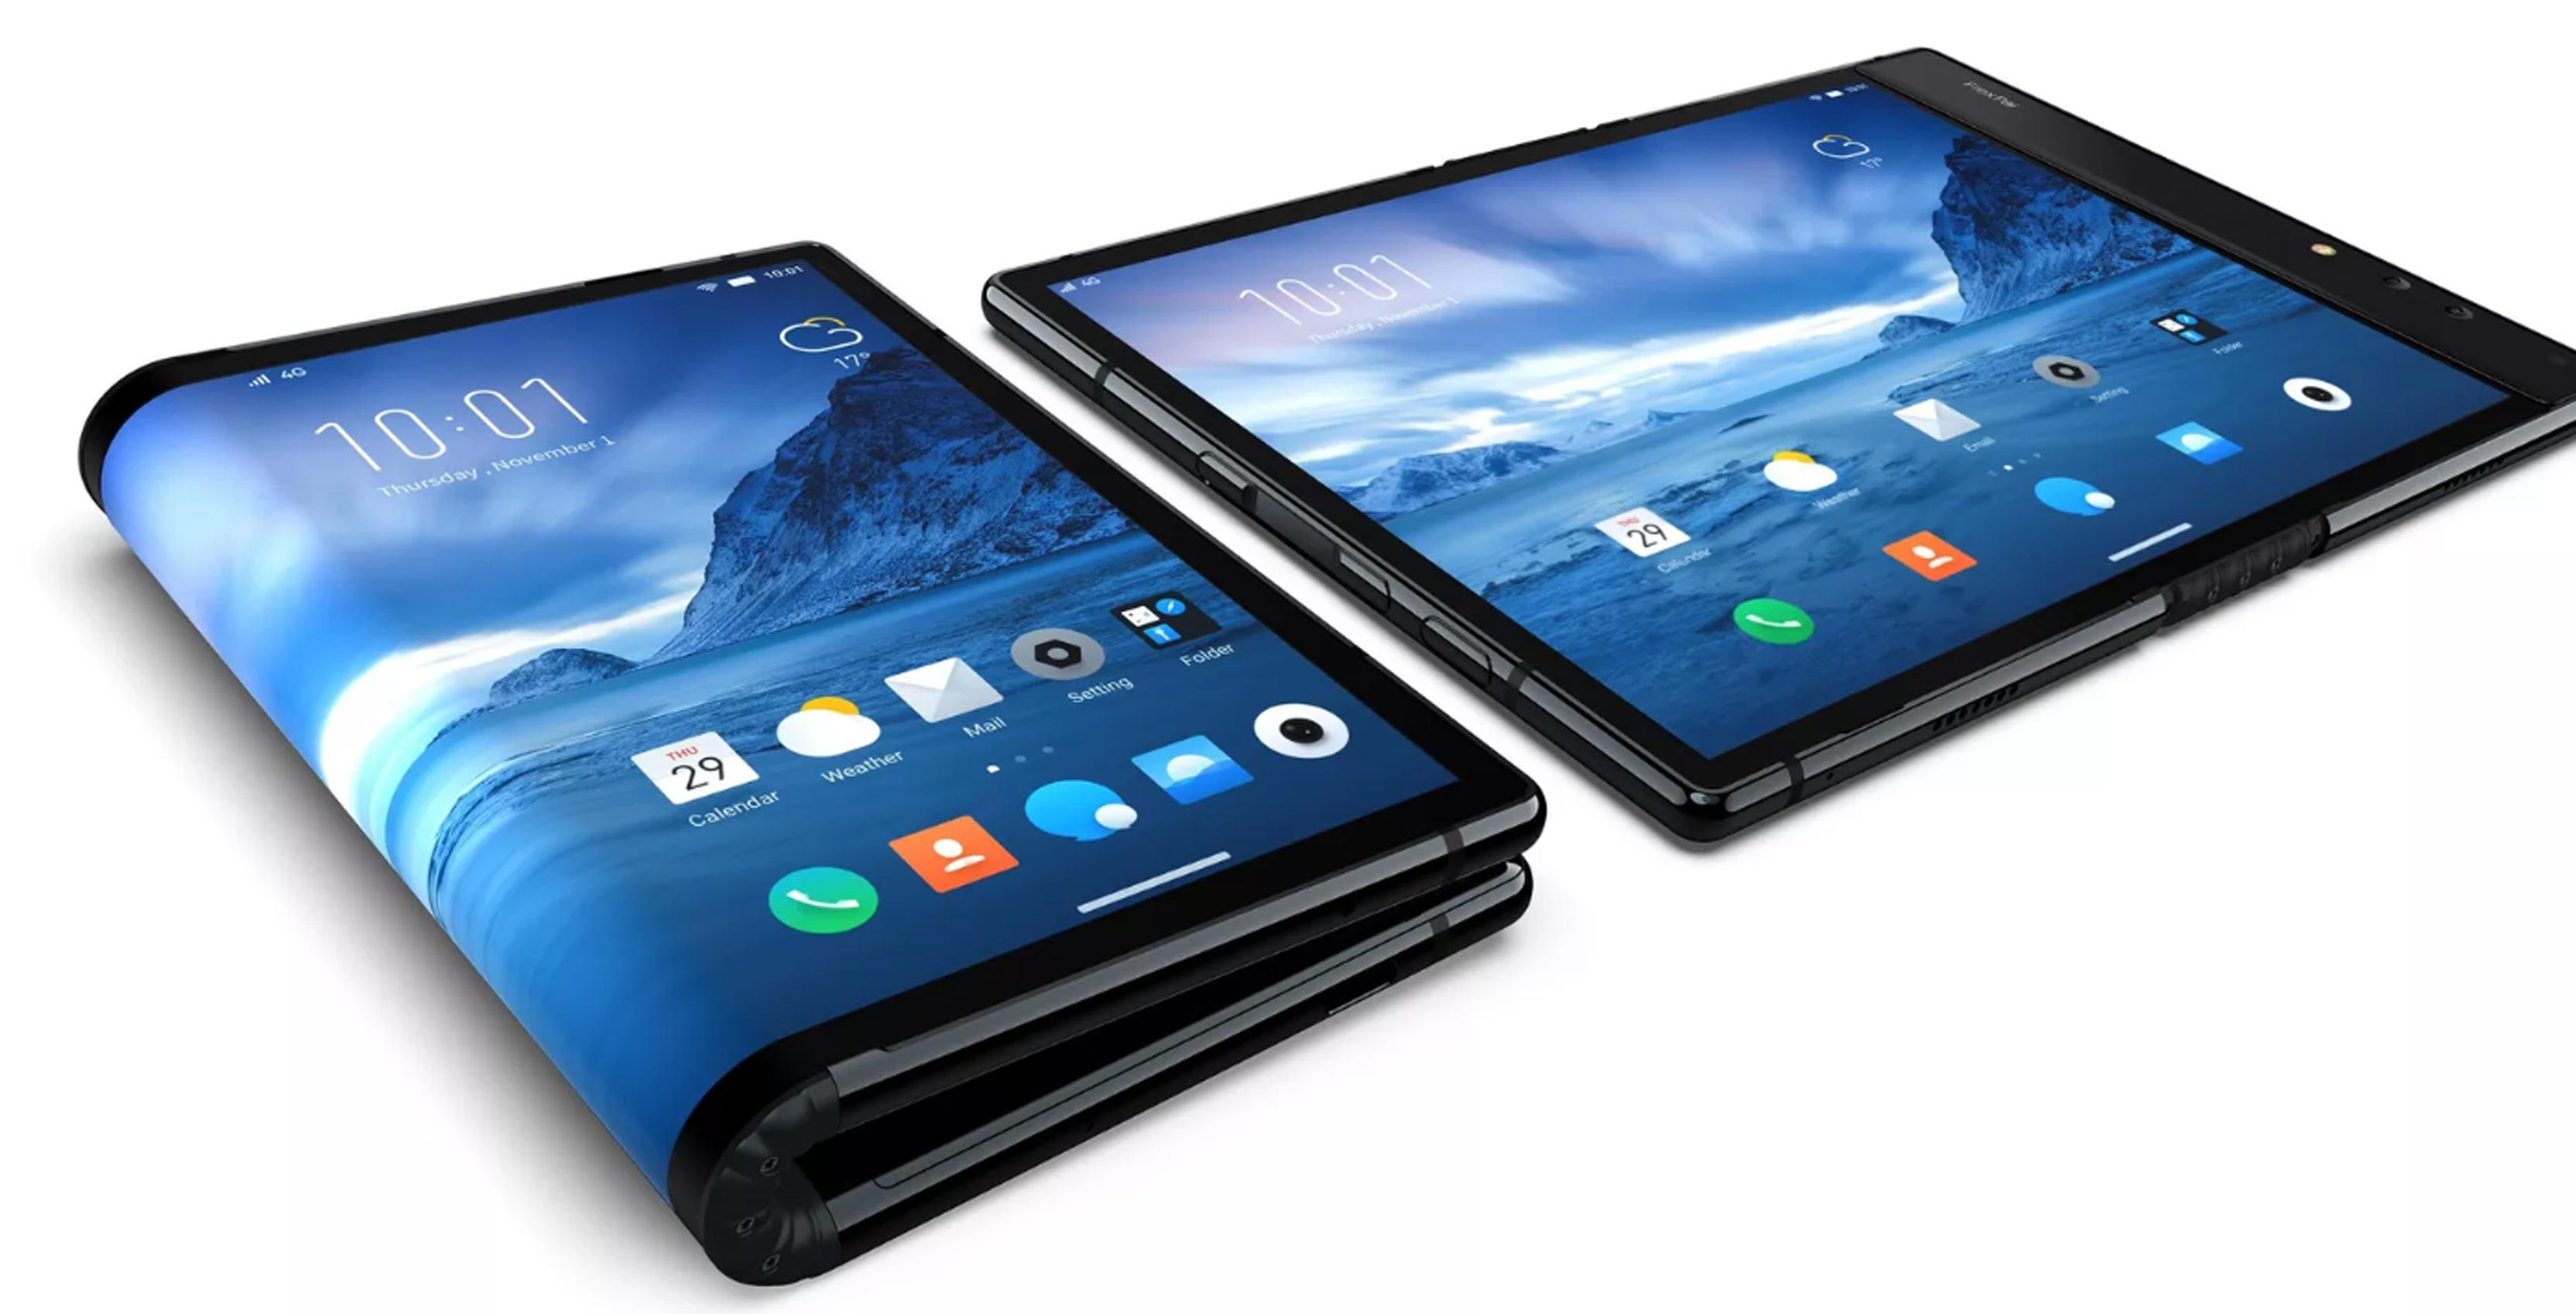 World's first foldable smartphone unveiled